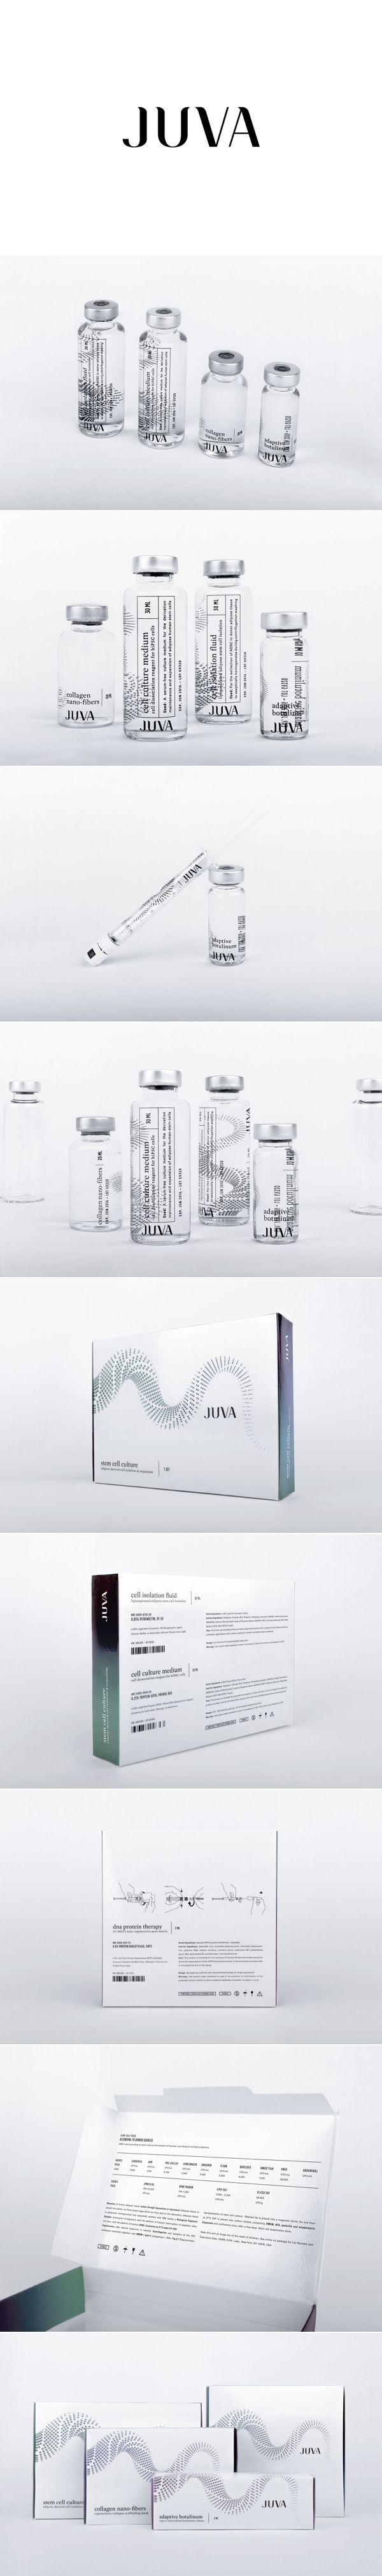 curated by minimalism.co — Juva brand identity